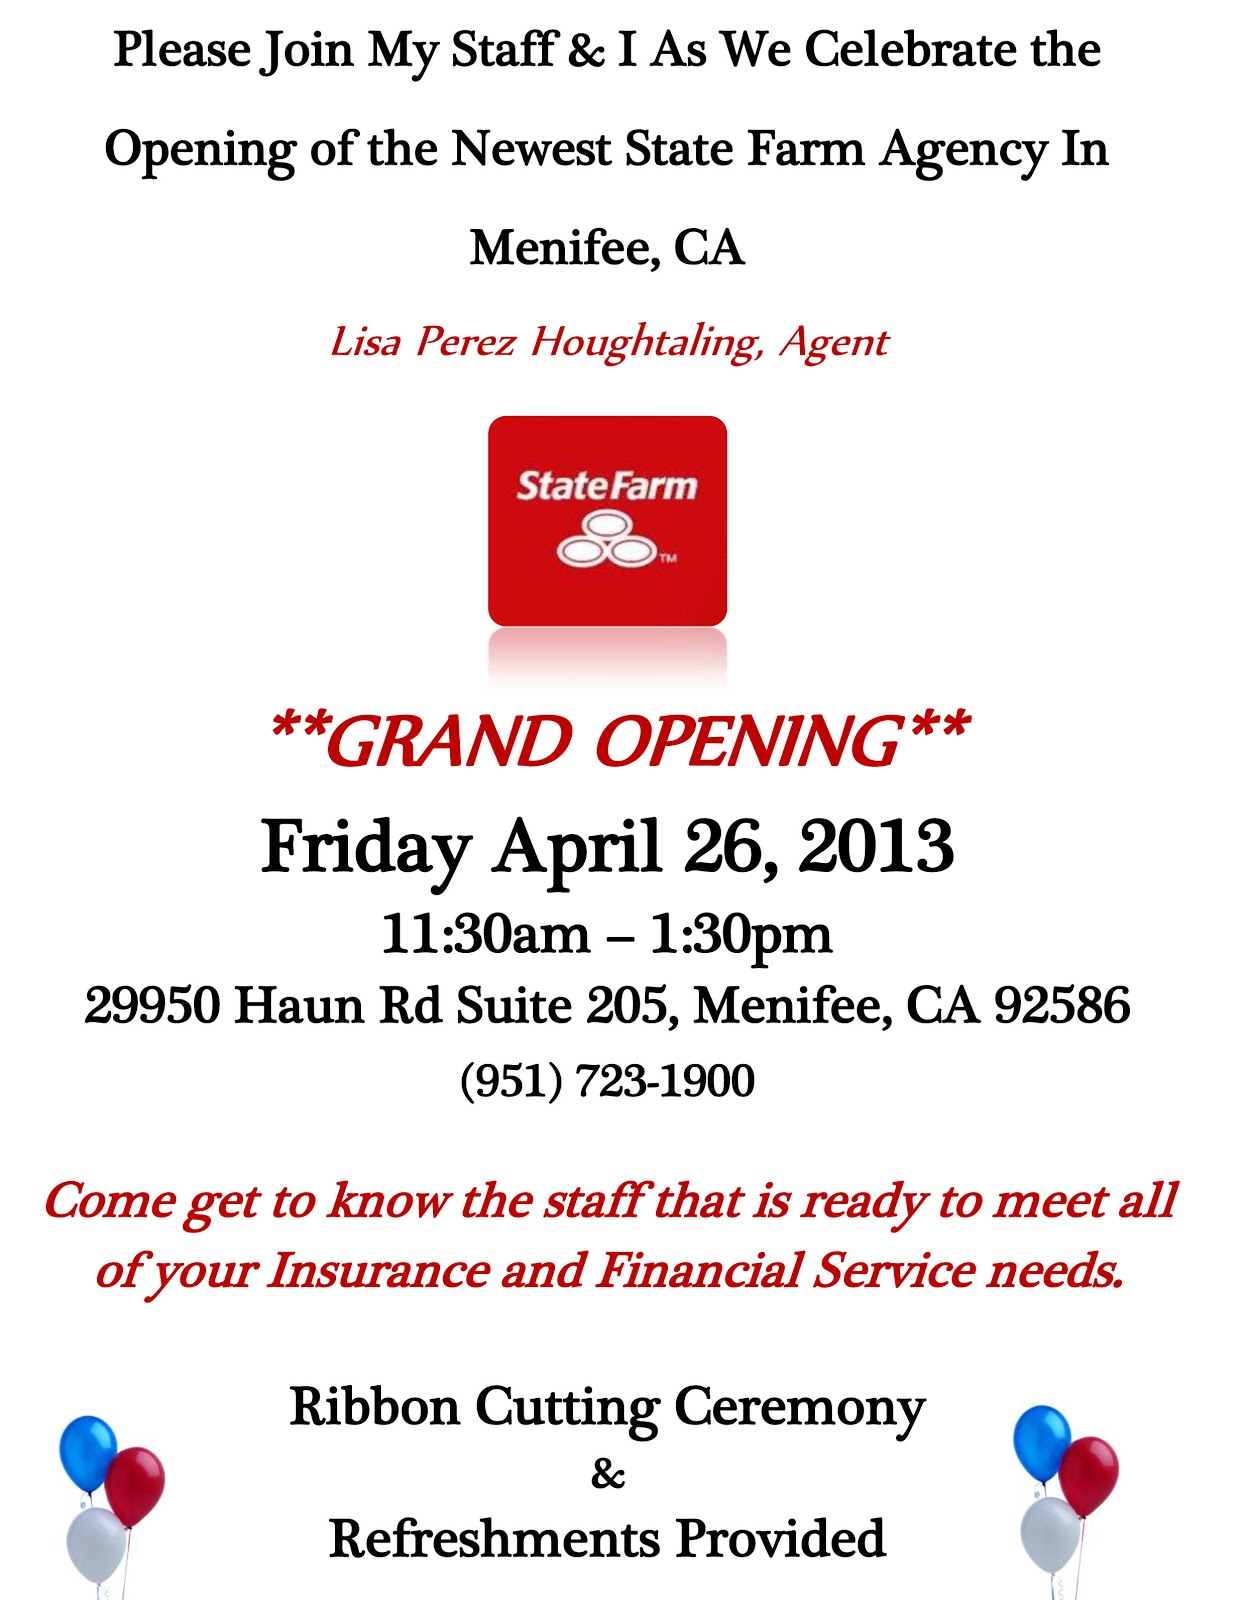 Menifees newest state farm agency grand opening april 26 menifees newest state farm agency grand opening april 26 menifee 247 stopboris